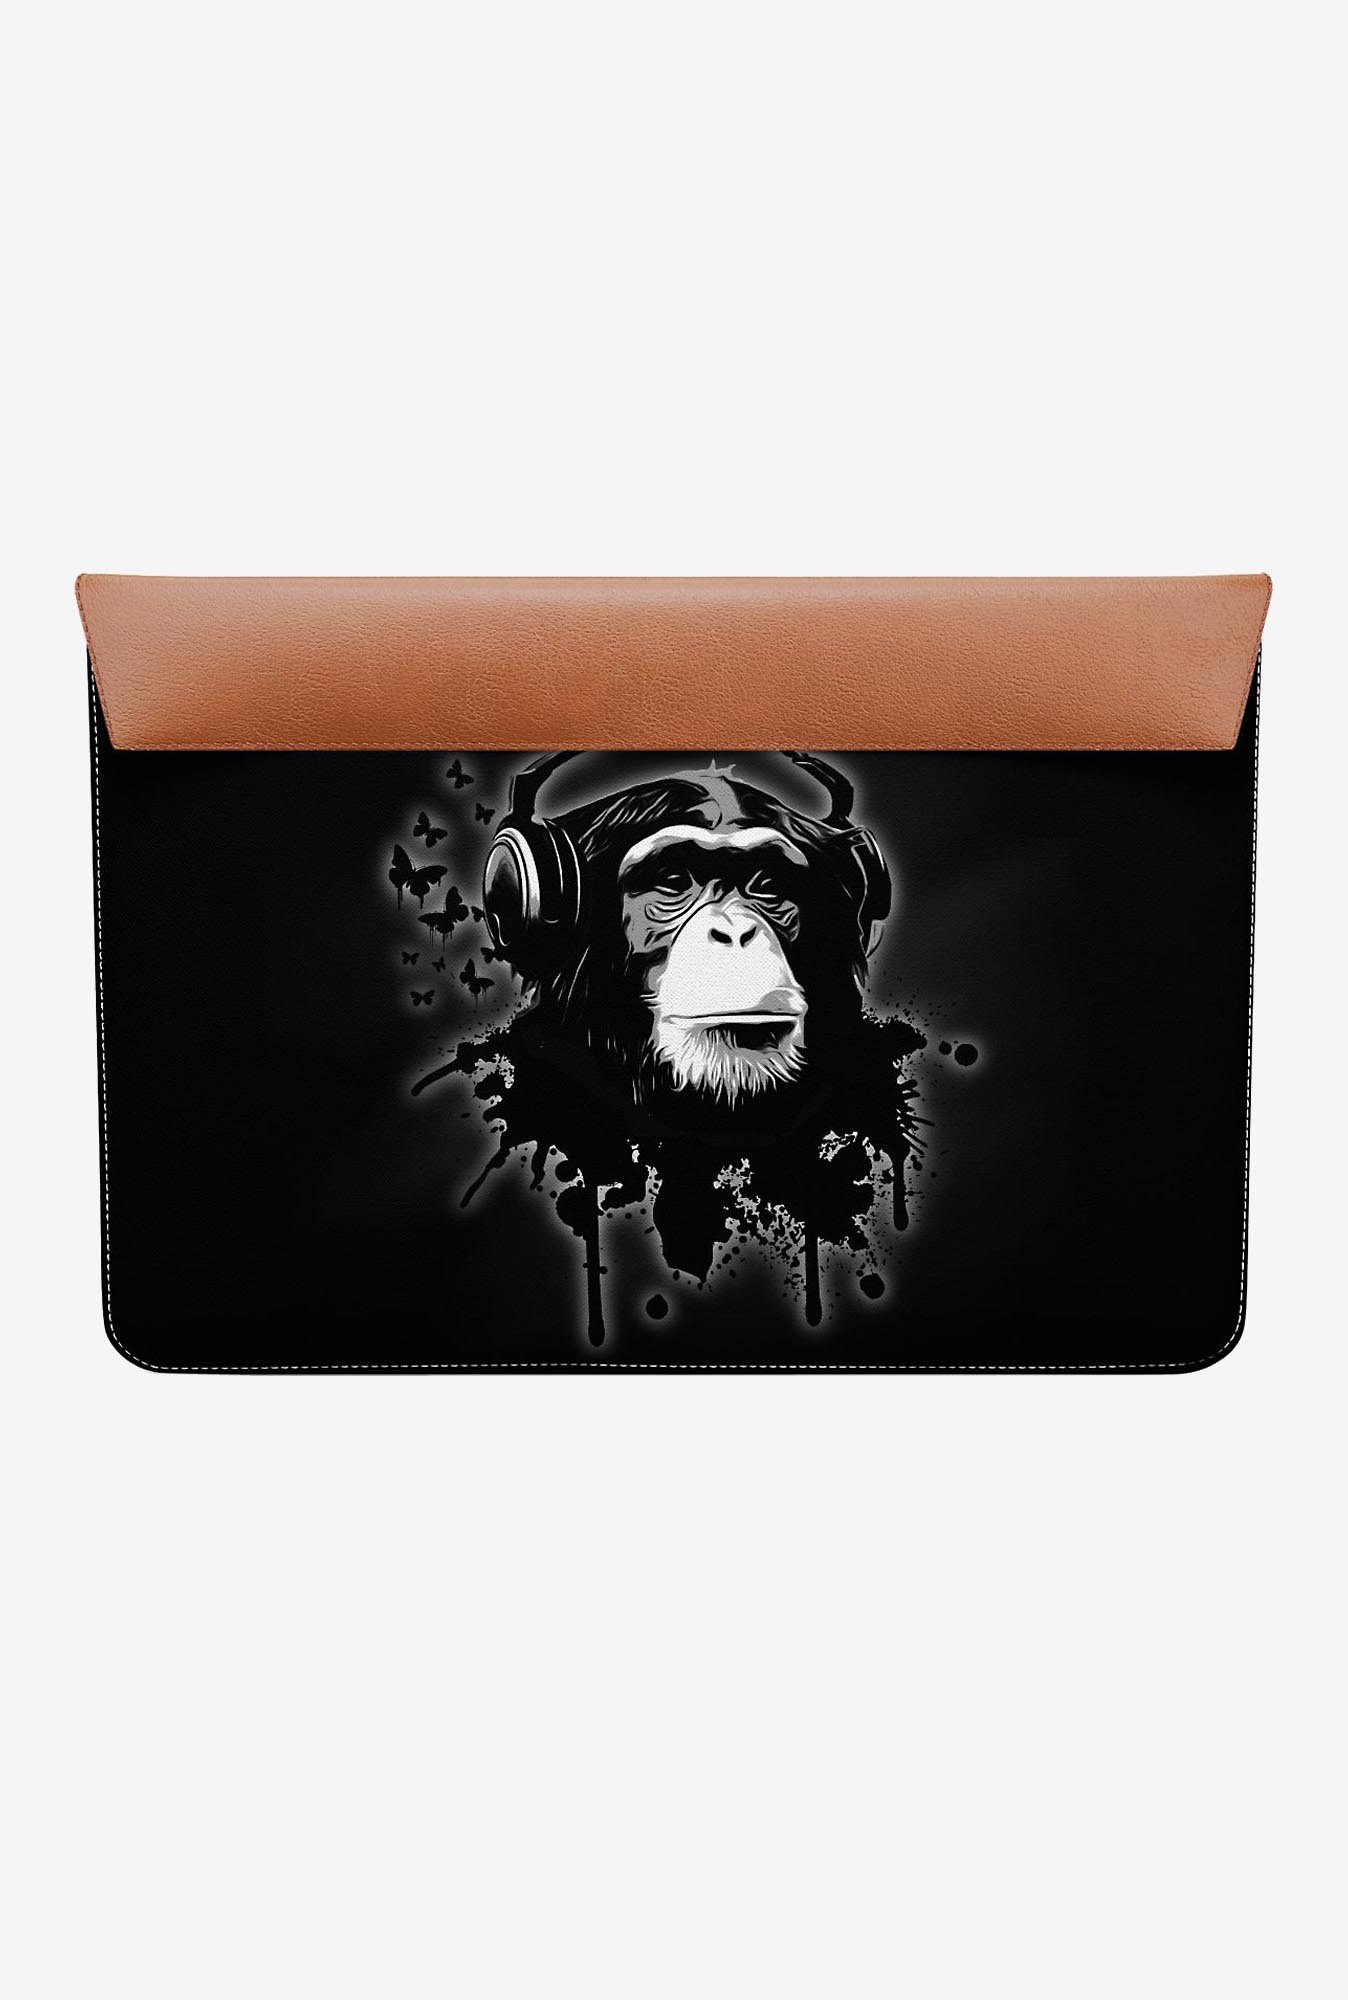 DailyObjects Monkey Business MacBook Air 13 Envelope Sleeve